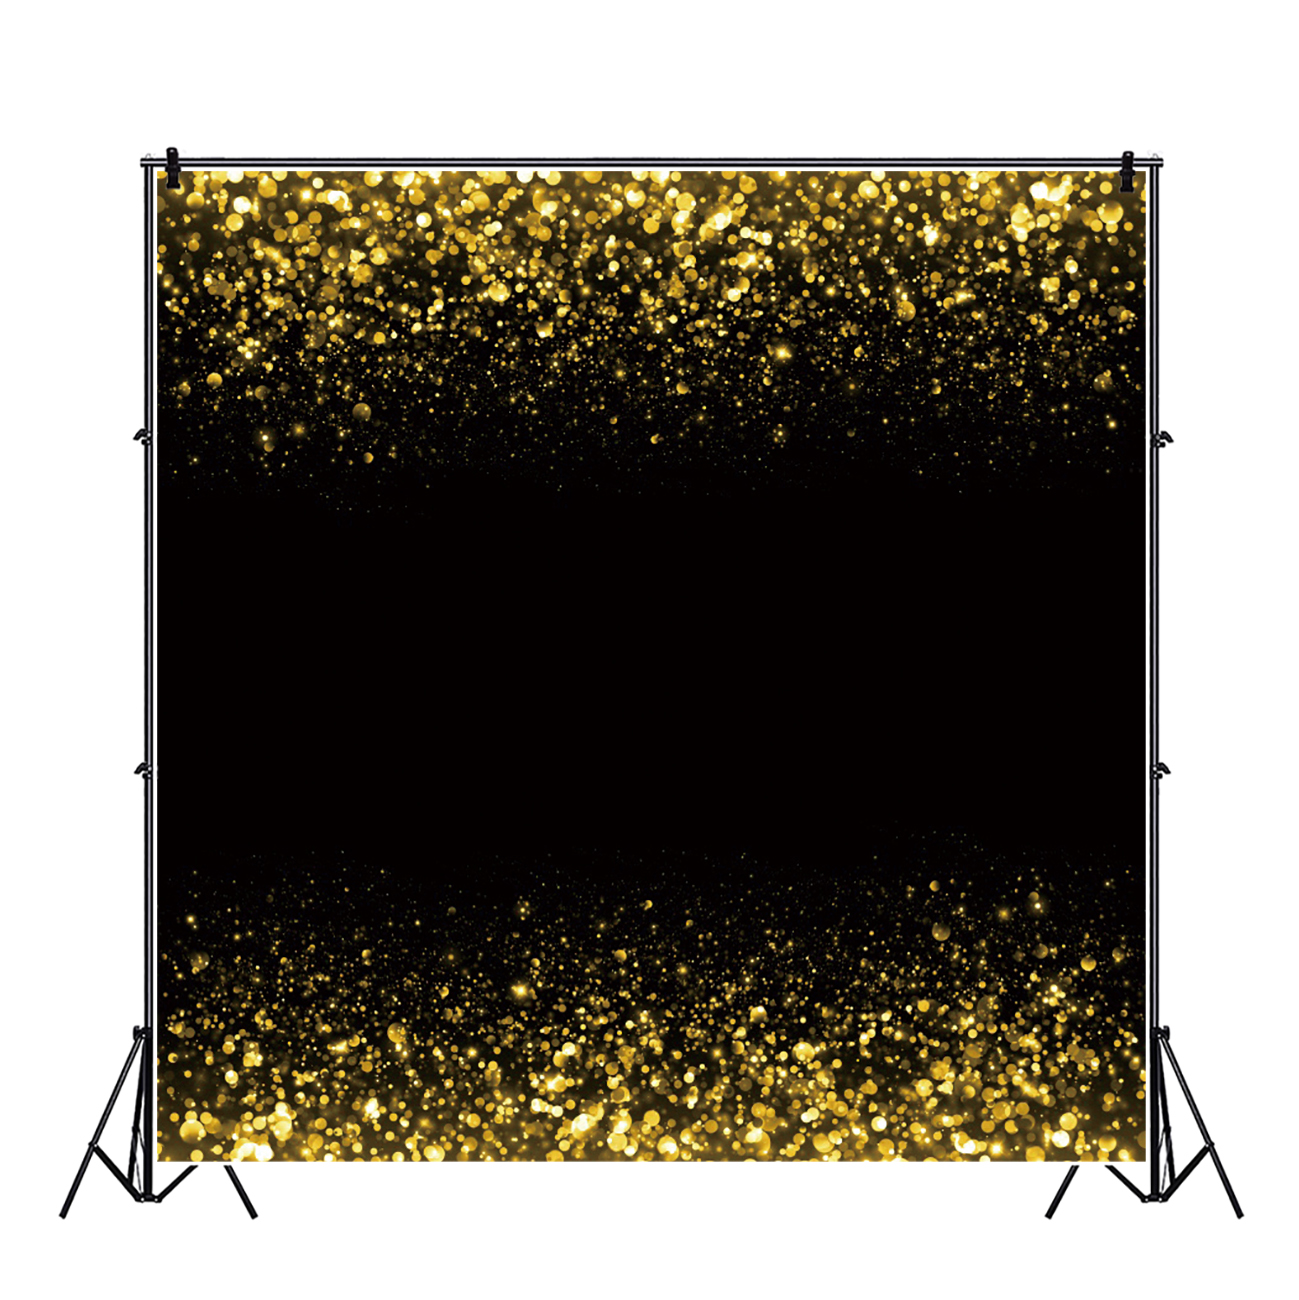 10x10ft Happy Birthday Backdrop Golden Balloons Champagne Glitters Banners Golden Frame Photography Background Wallpaper Decor Birthday Party Girls Children Adults Portrait Studio Props